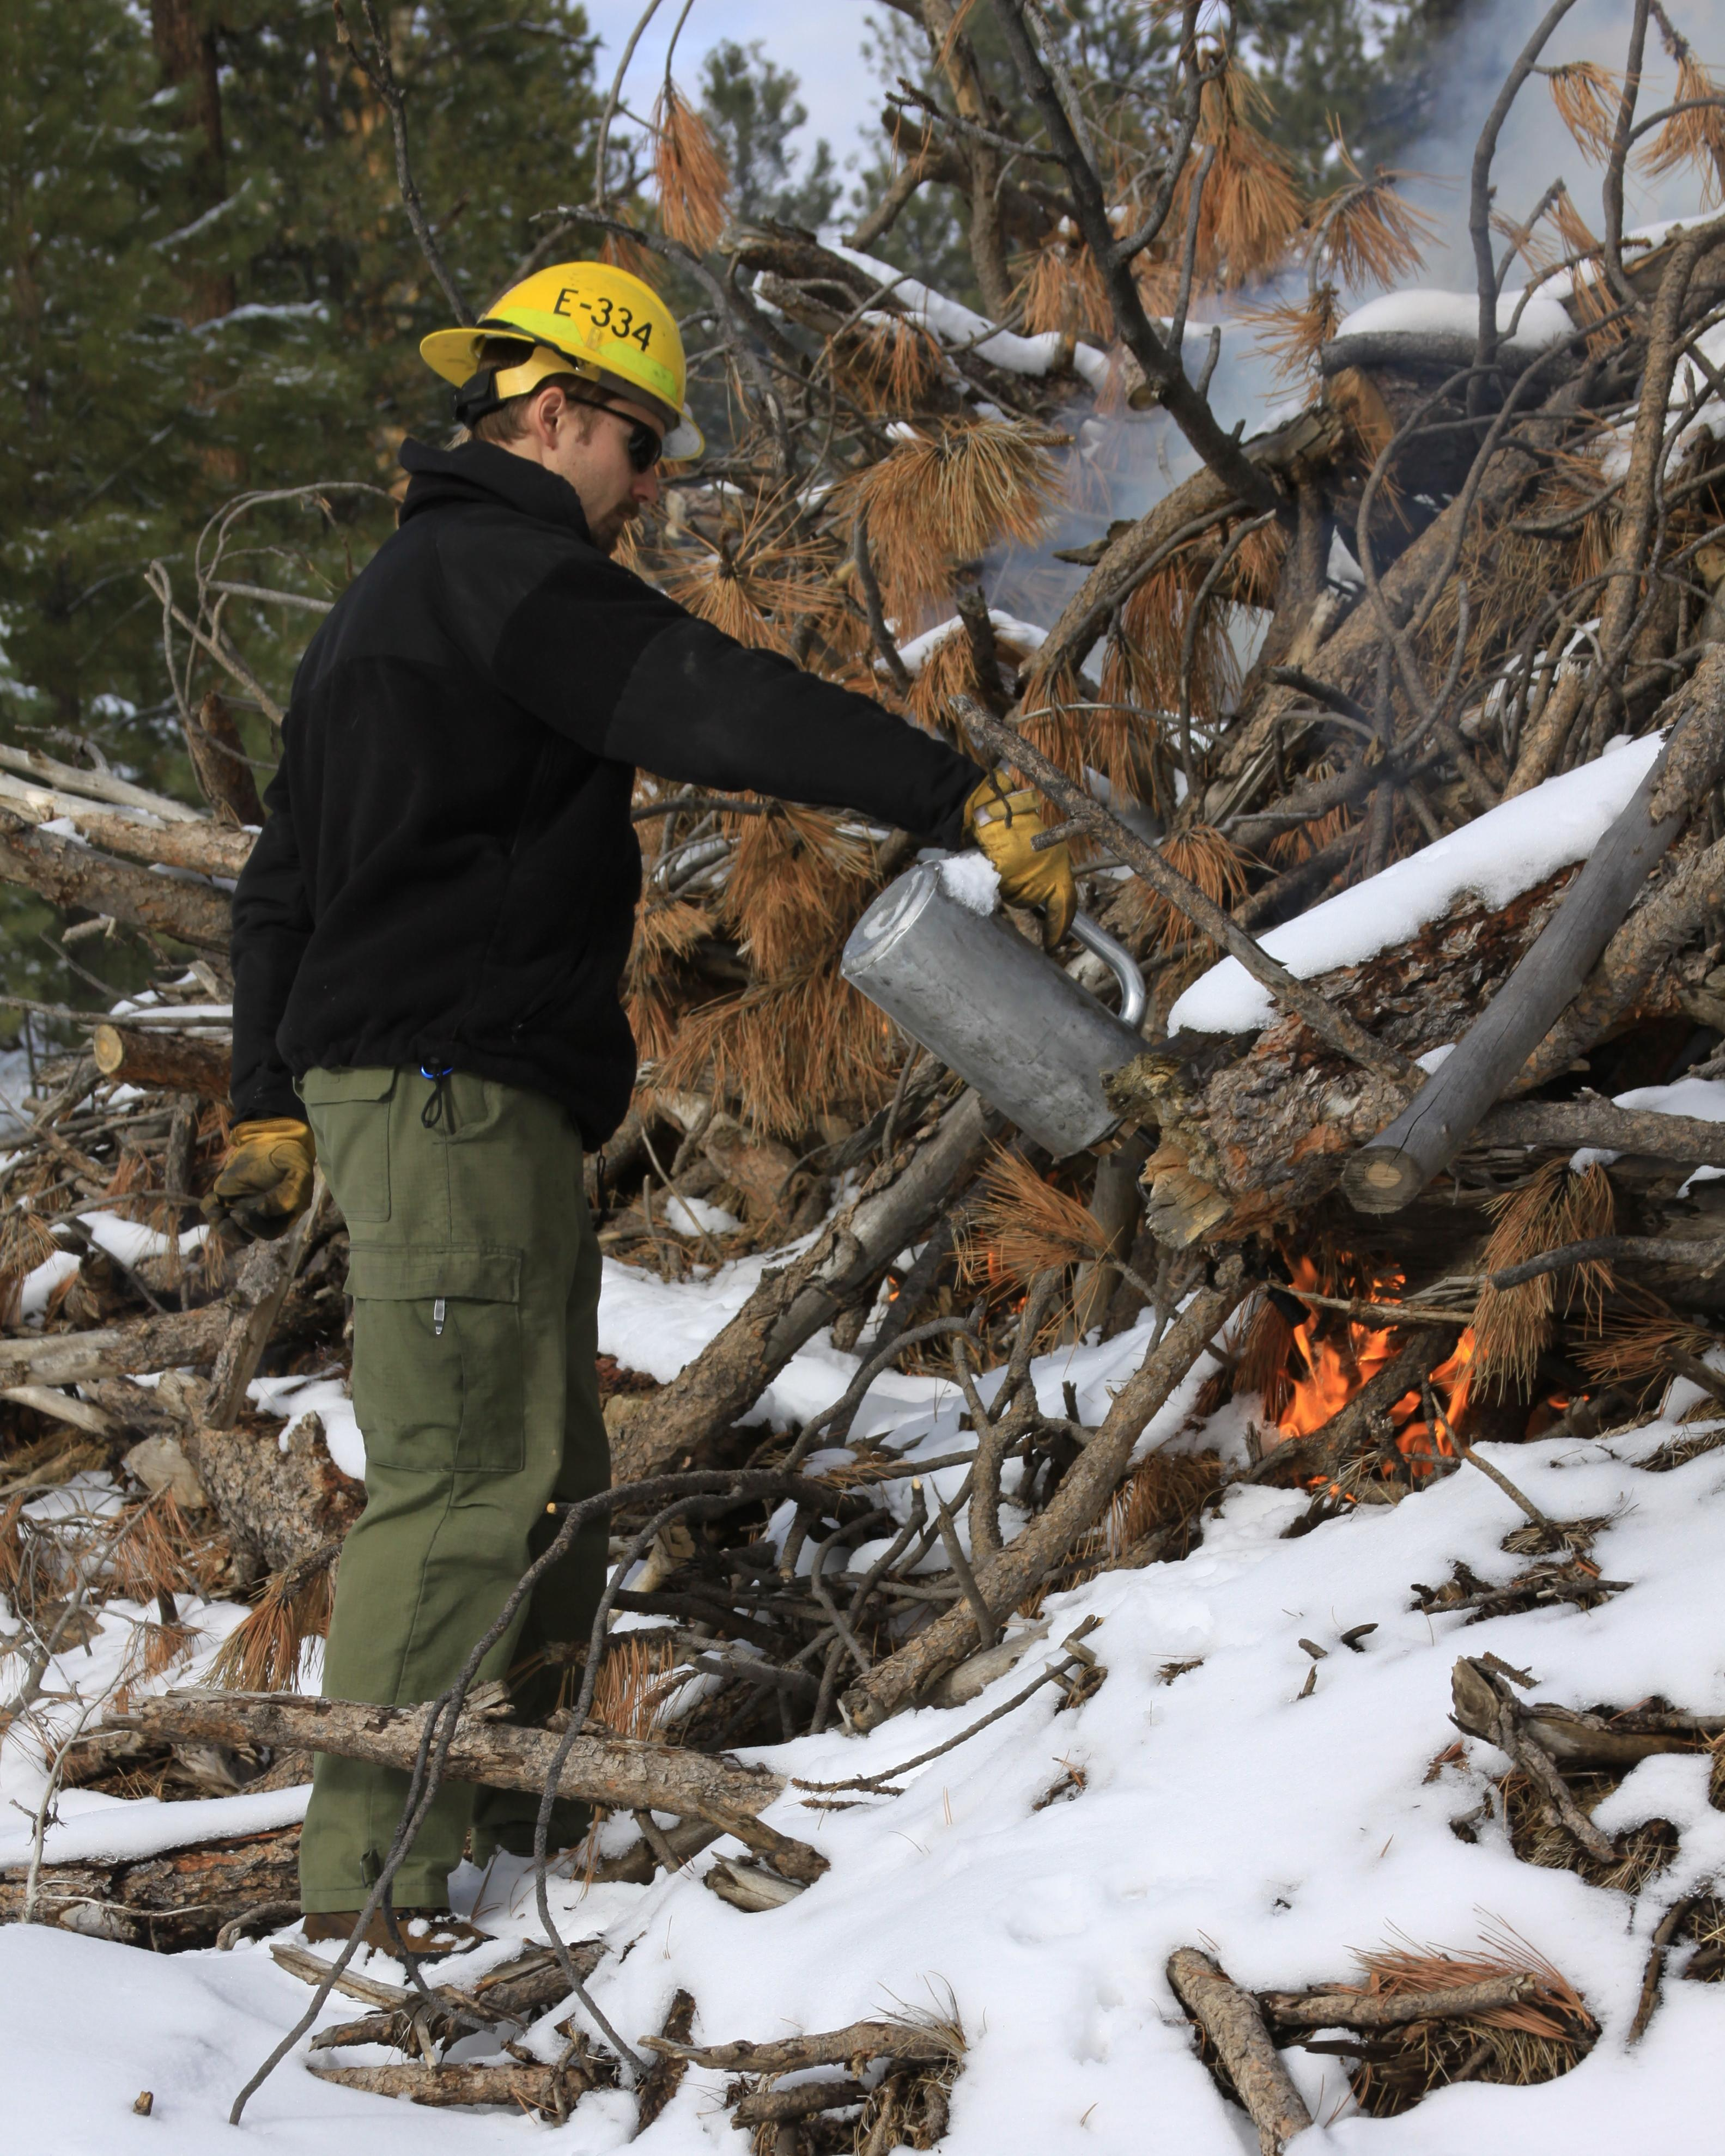 A North Zone wildland fire fighter ignites a pile last winter in the Jacob Lake Admin Complex. Credit the U.S. Forest Service, Southwestern Region, Kaibab National Forest, circa Nov. 23, 2015 | Photo courtesy of U.S. Forest Service, St. George News